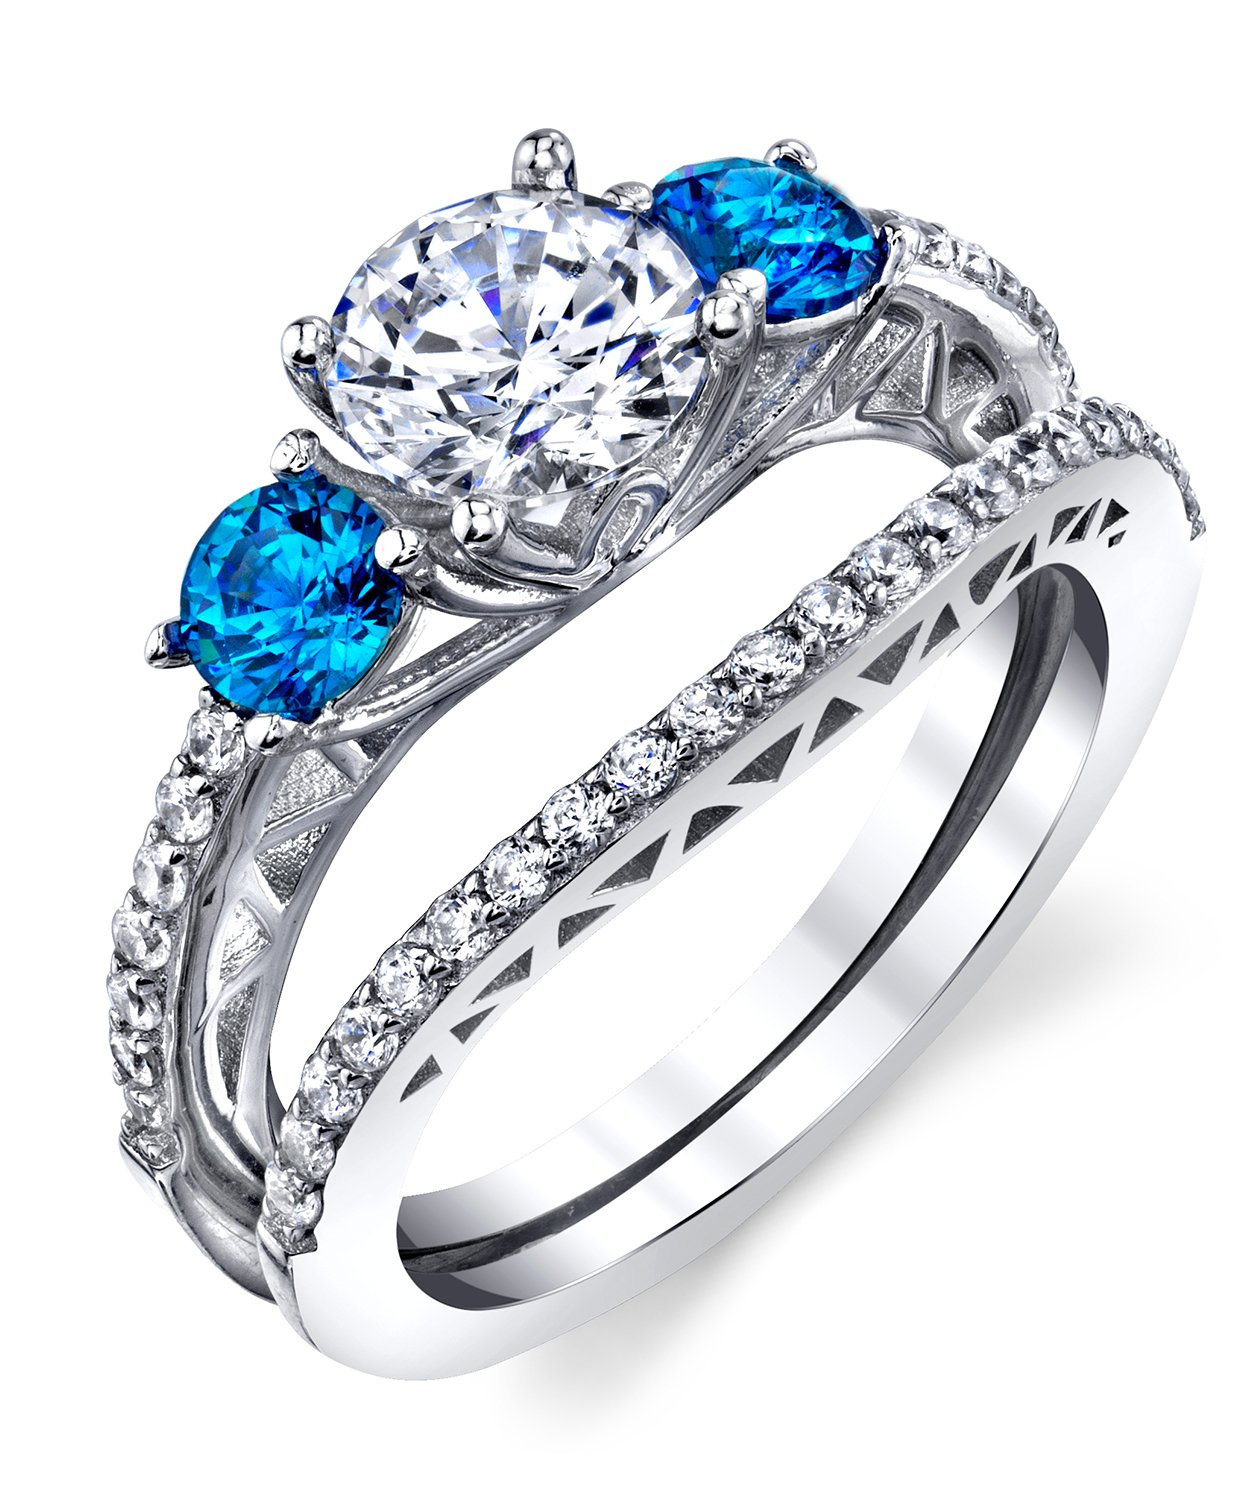 Metal Masters Co. Sterling Silver 925 Engagement Rings Wedding Band Bridal Set Cubic Zirconia 2pcs 6